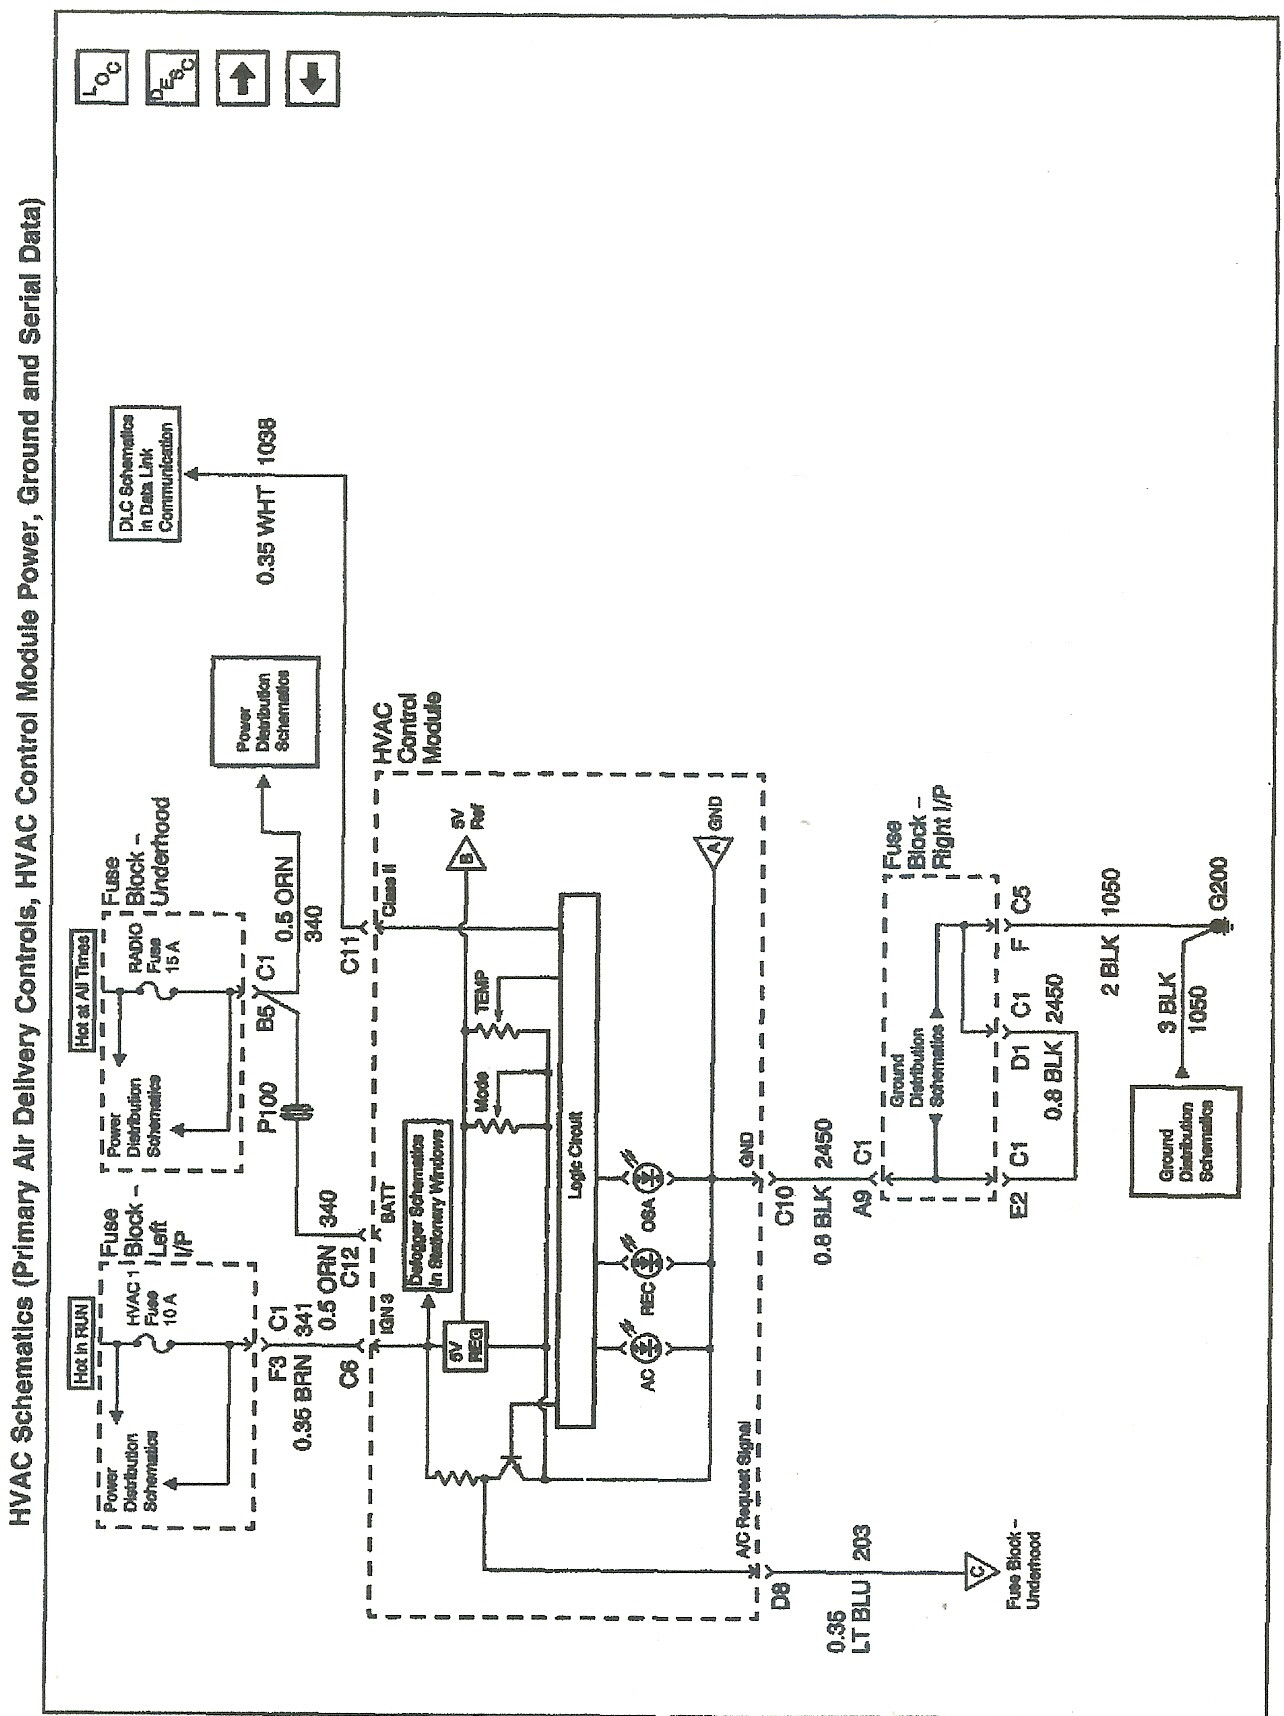 Jd 345 Wiring Diagram 14f82 1998 Lexus Sc400 Wiring Diagram Of Jd 345 Wiring Diagram